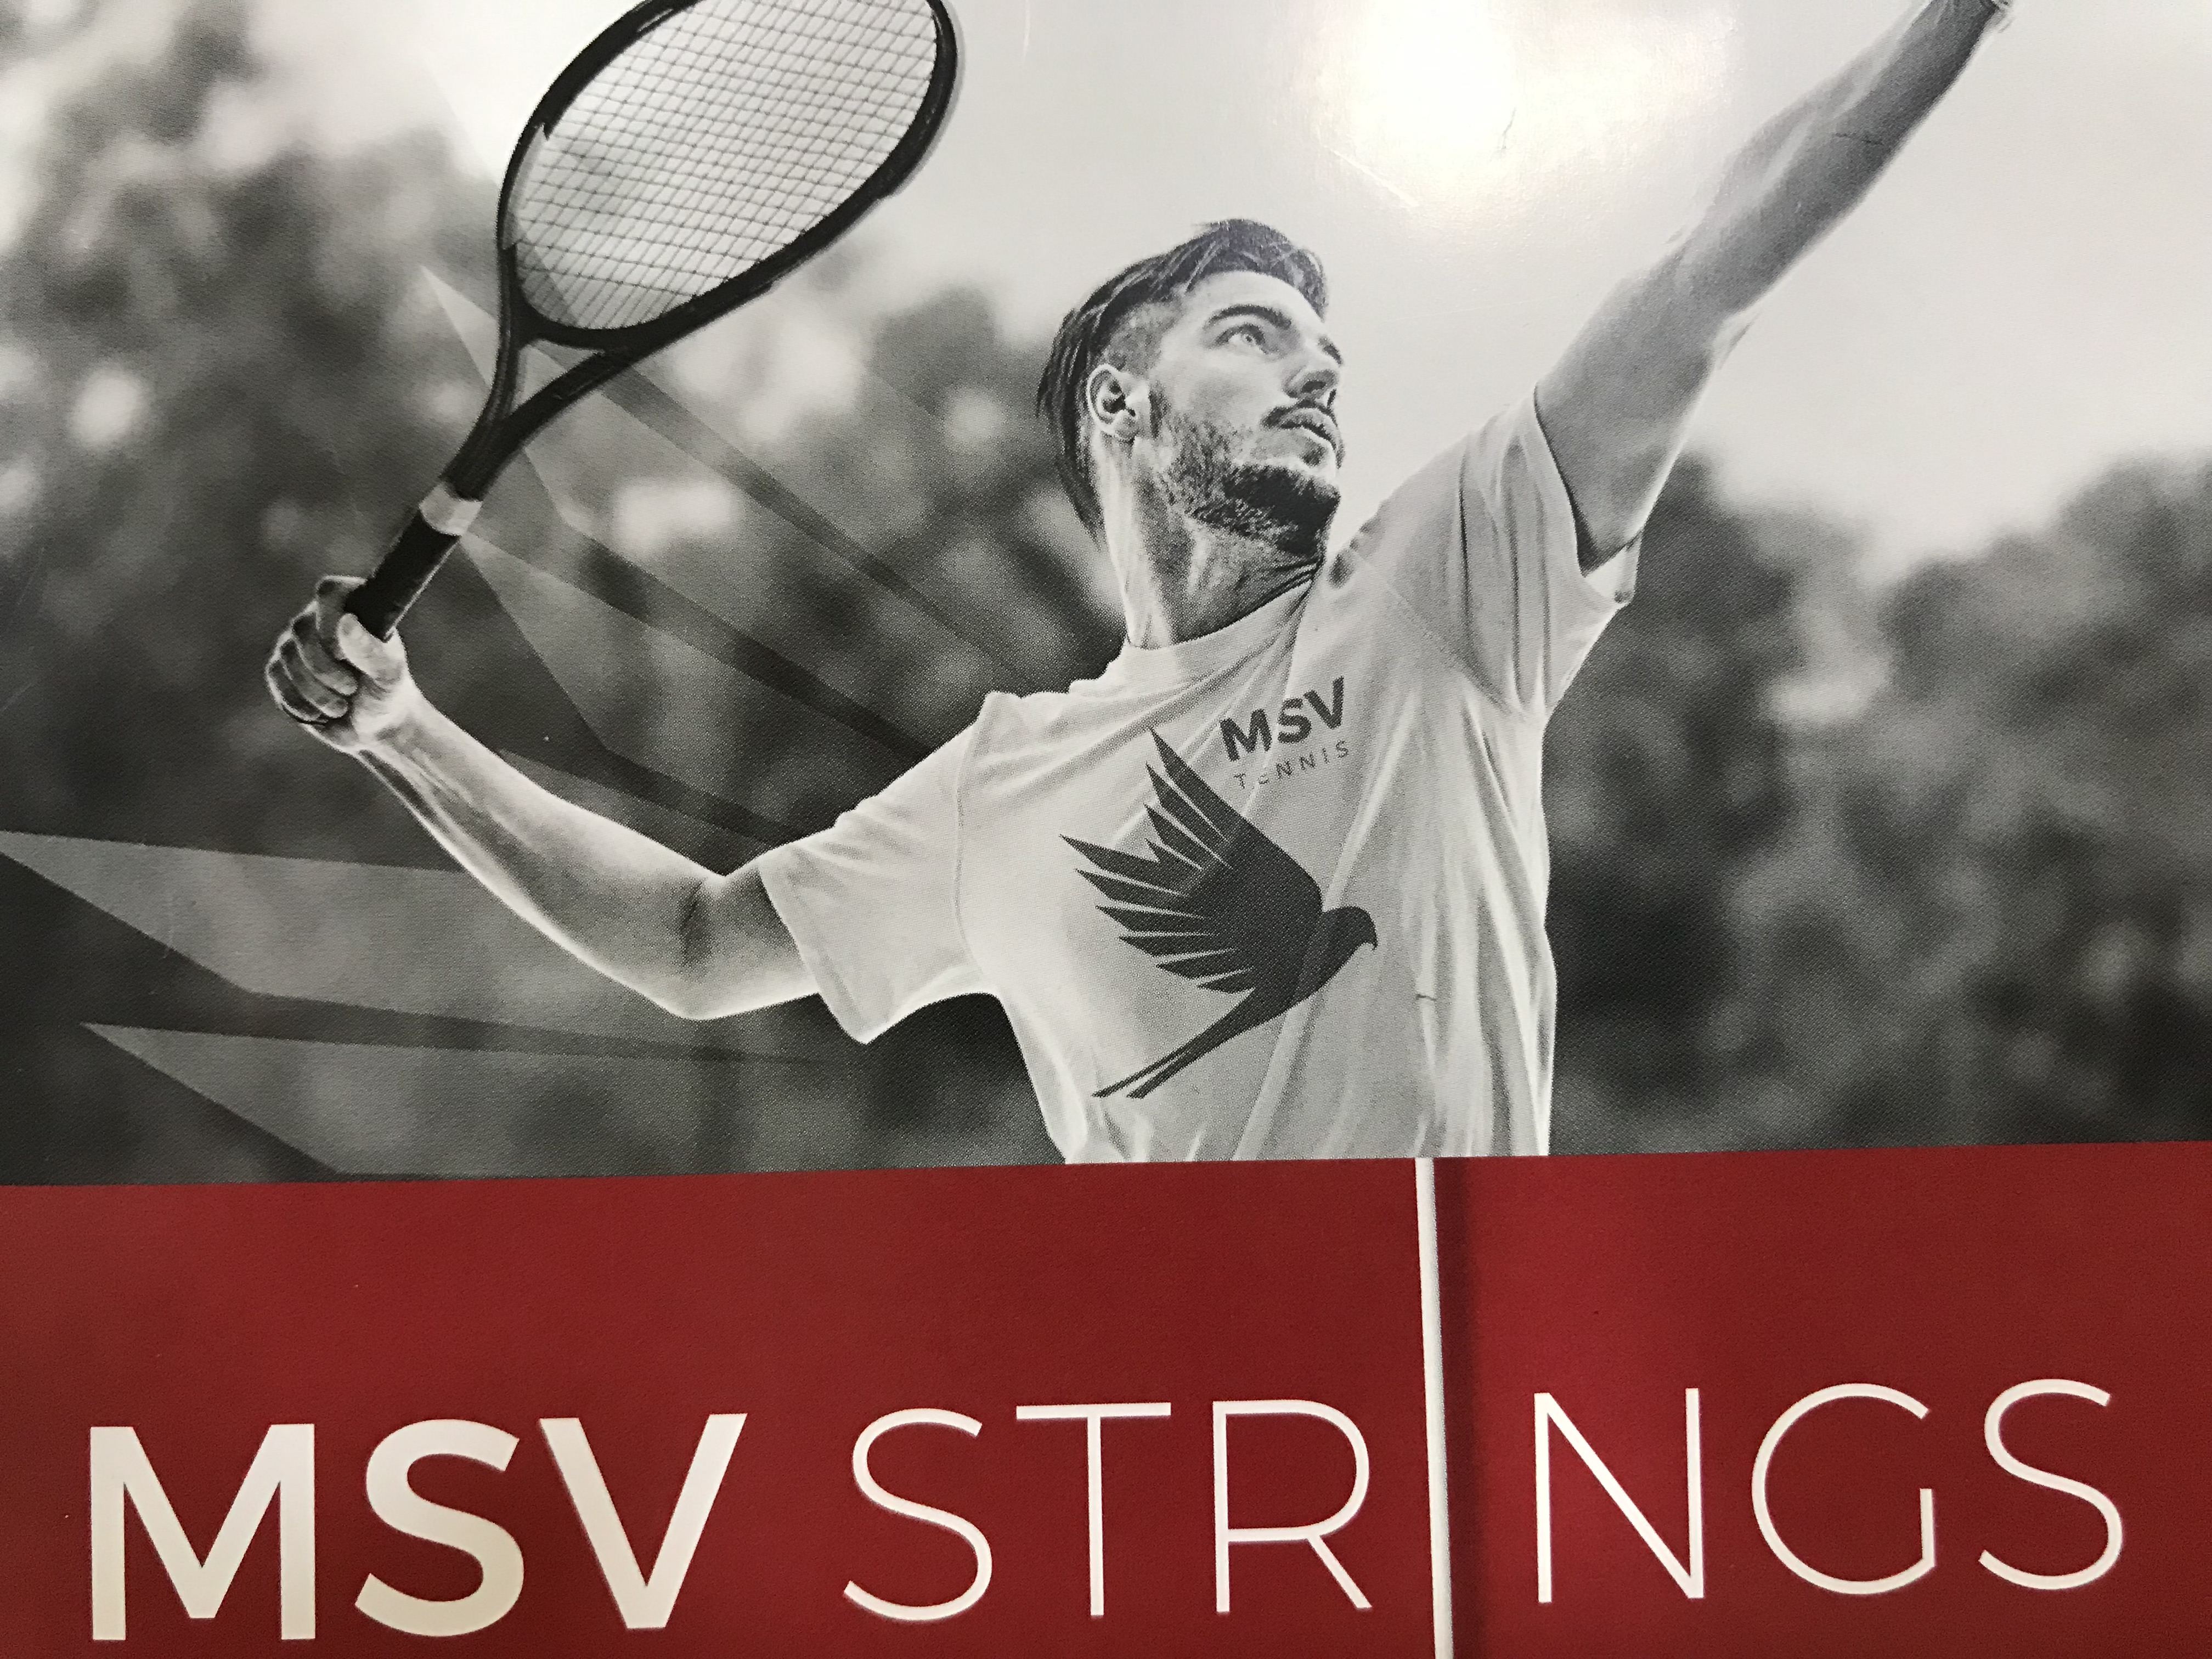 MSV Strings - Top quality strings at a good price